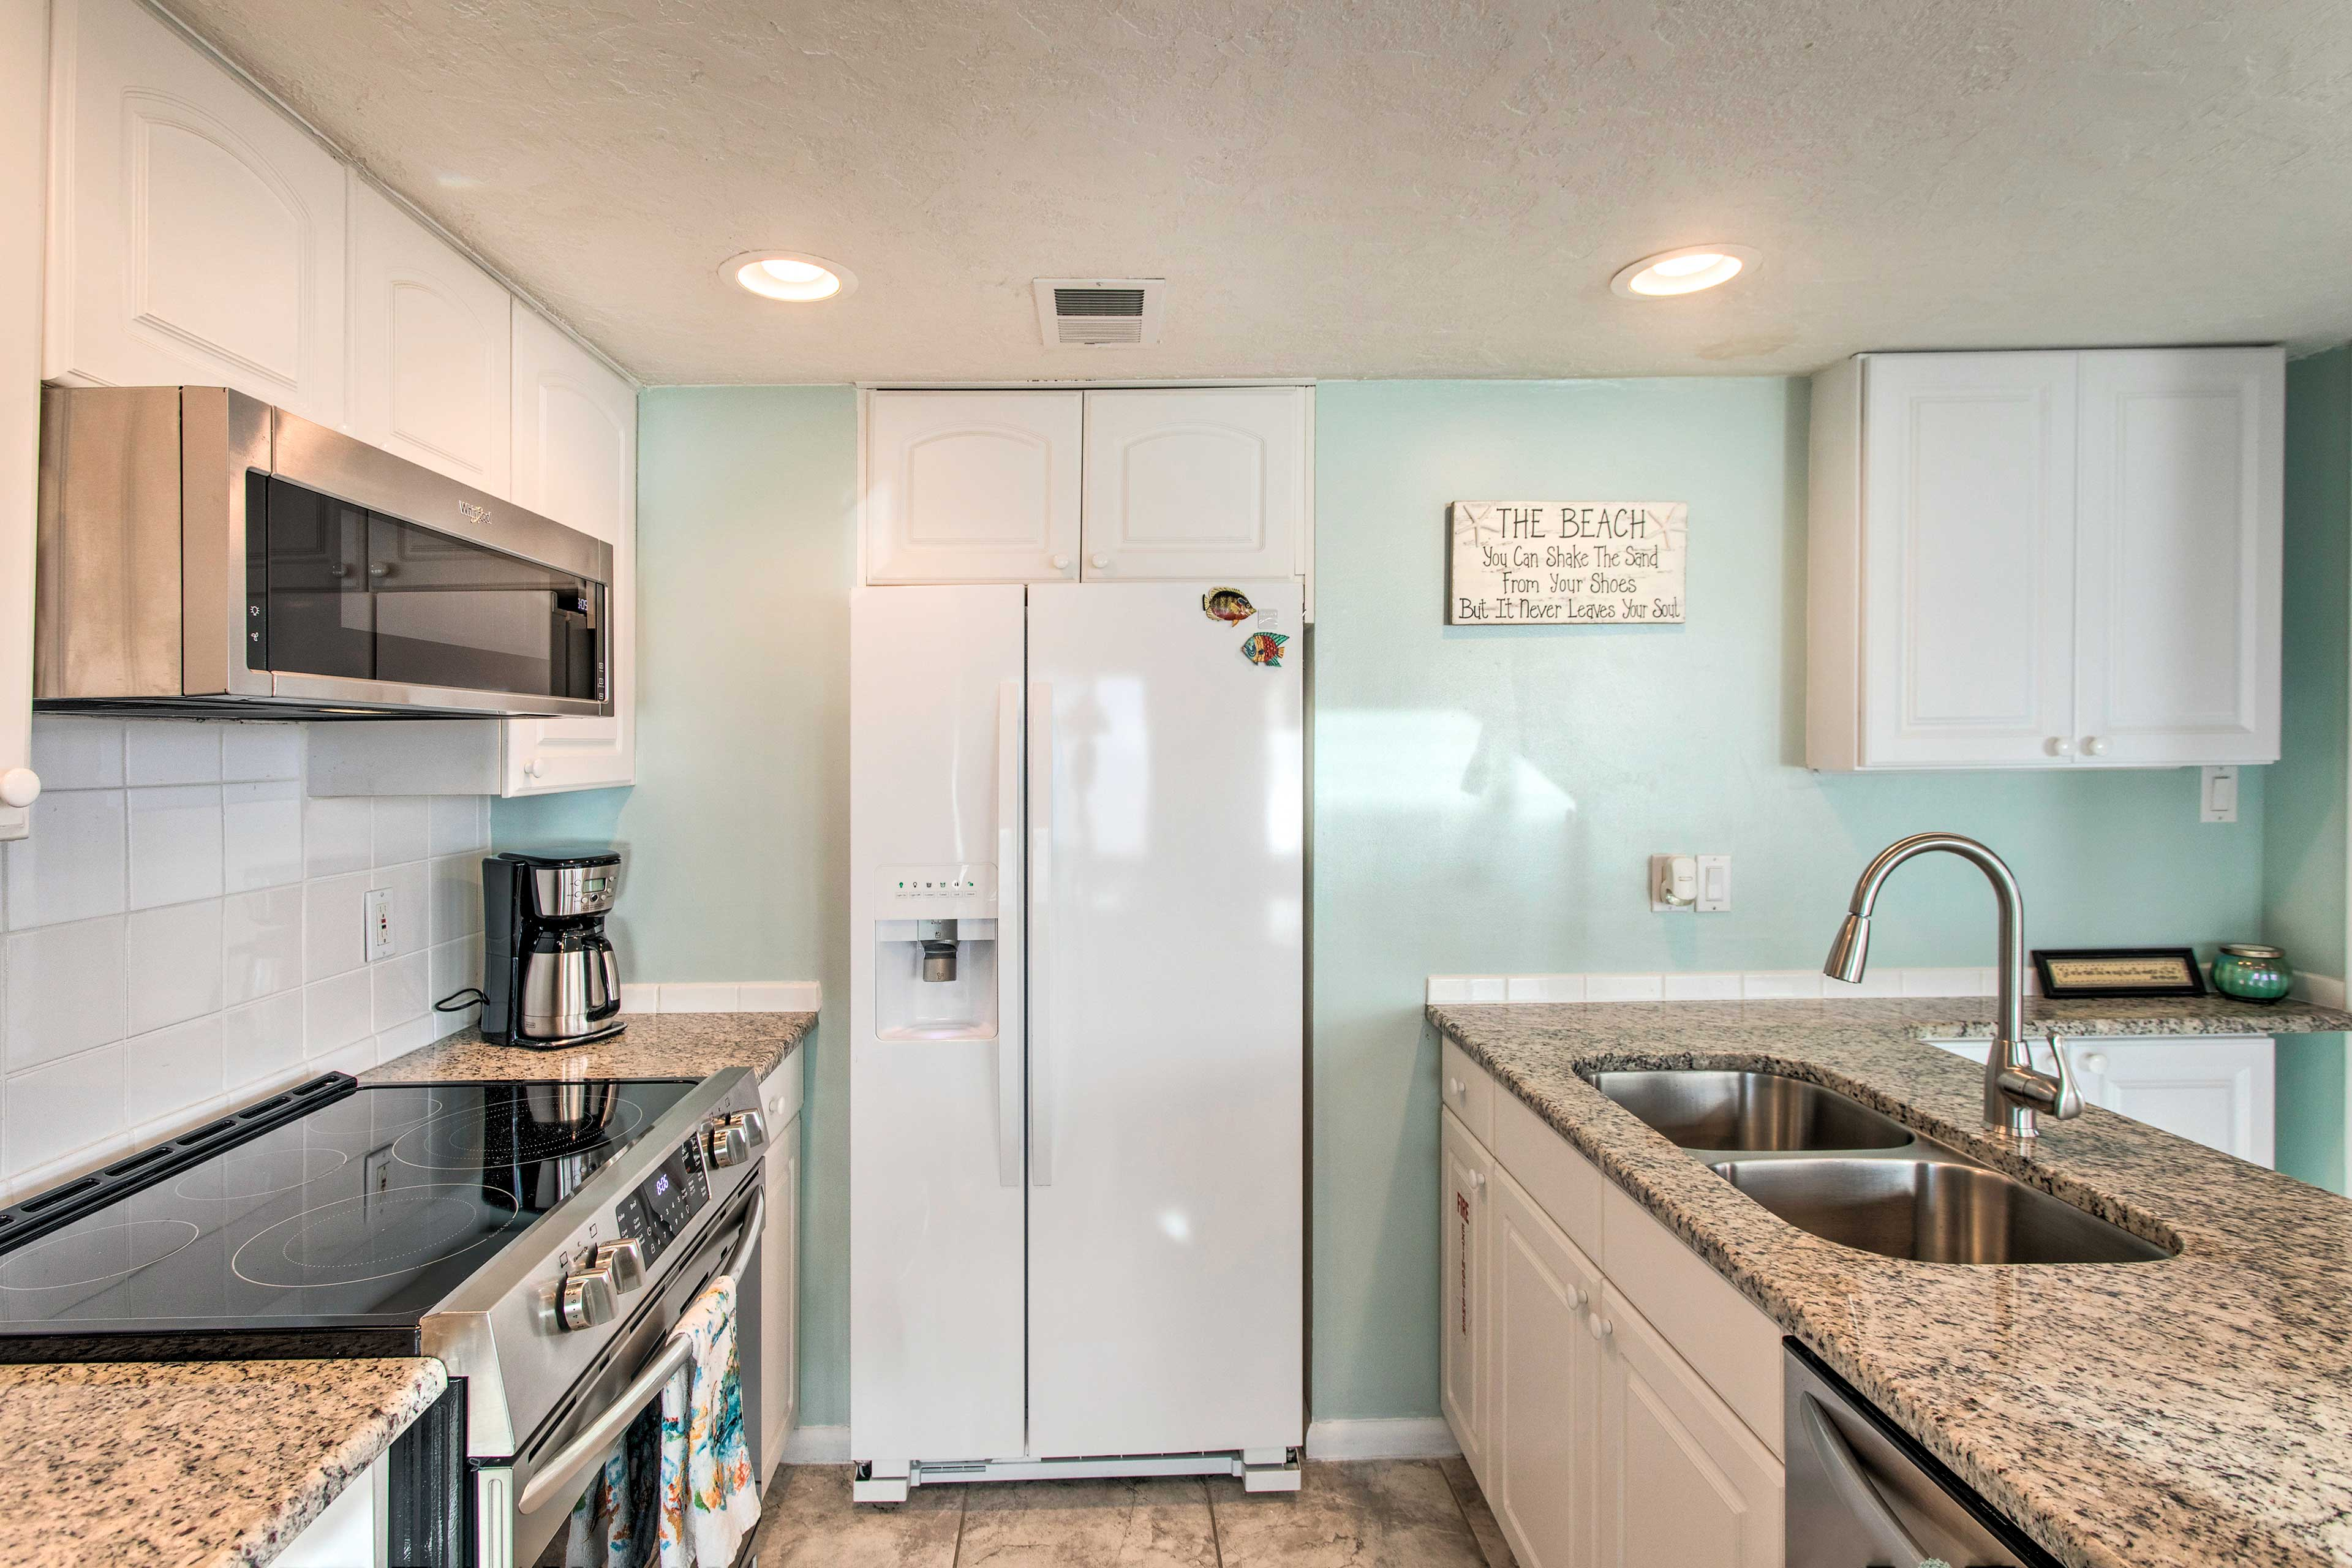 The fully equipped kitchen feels 5-star.